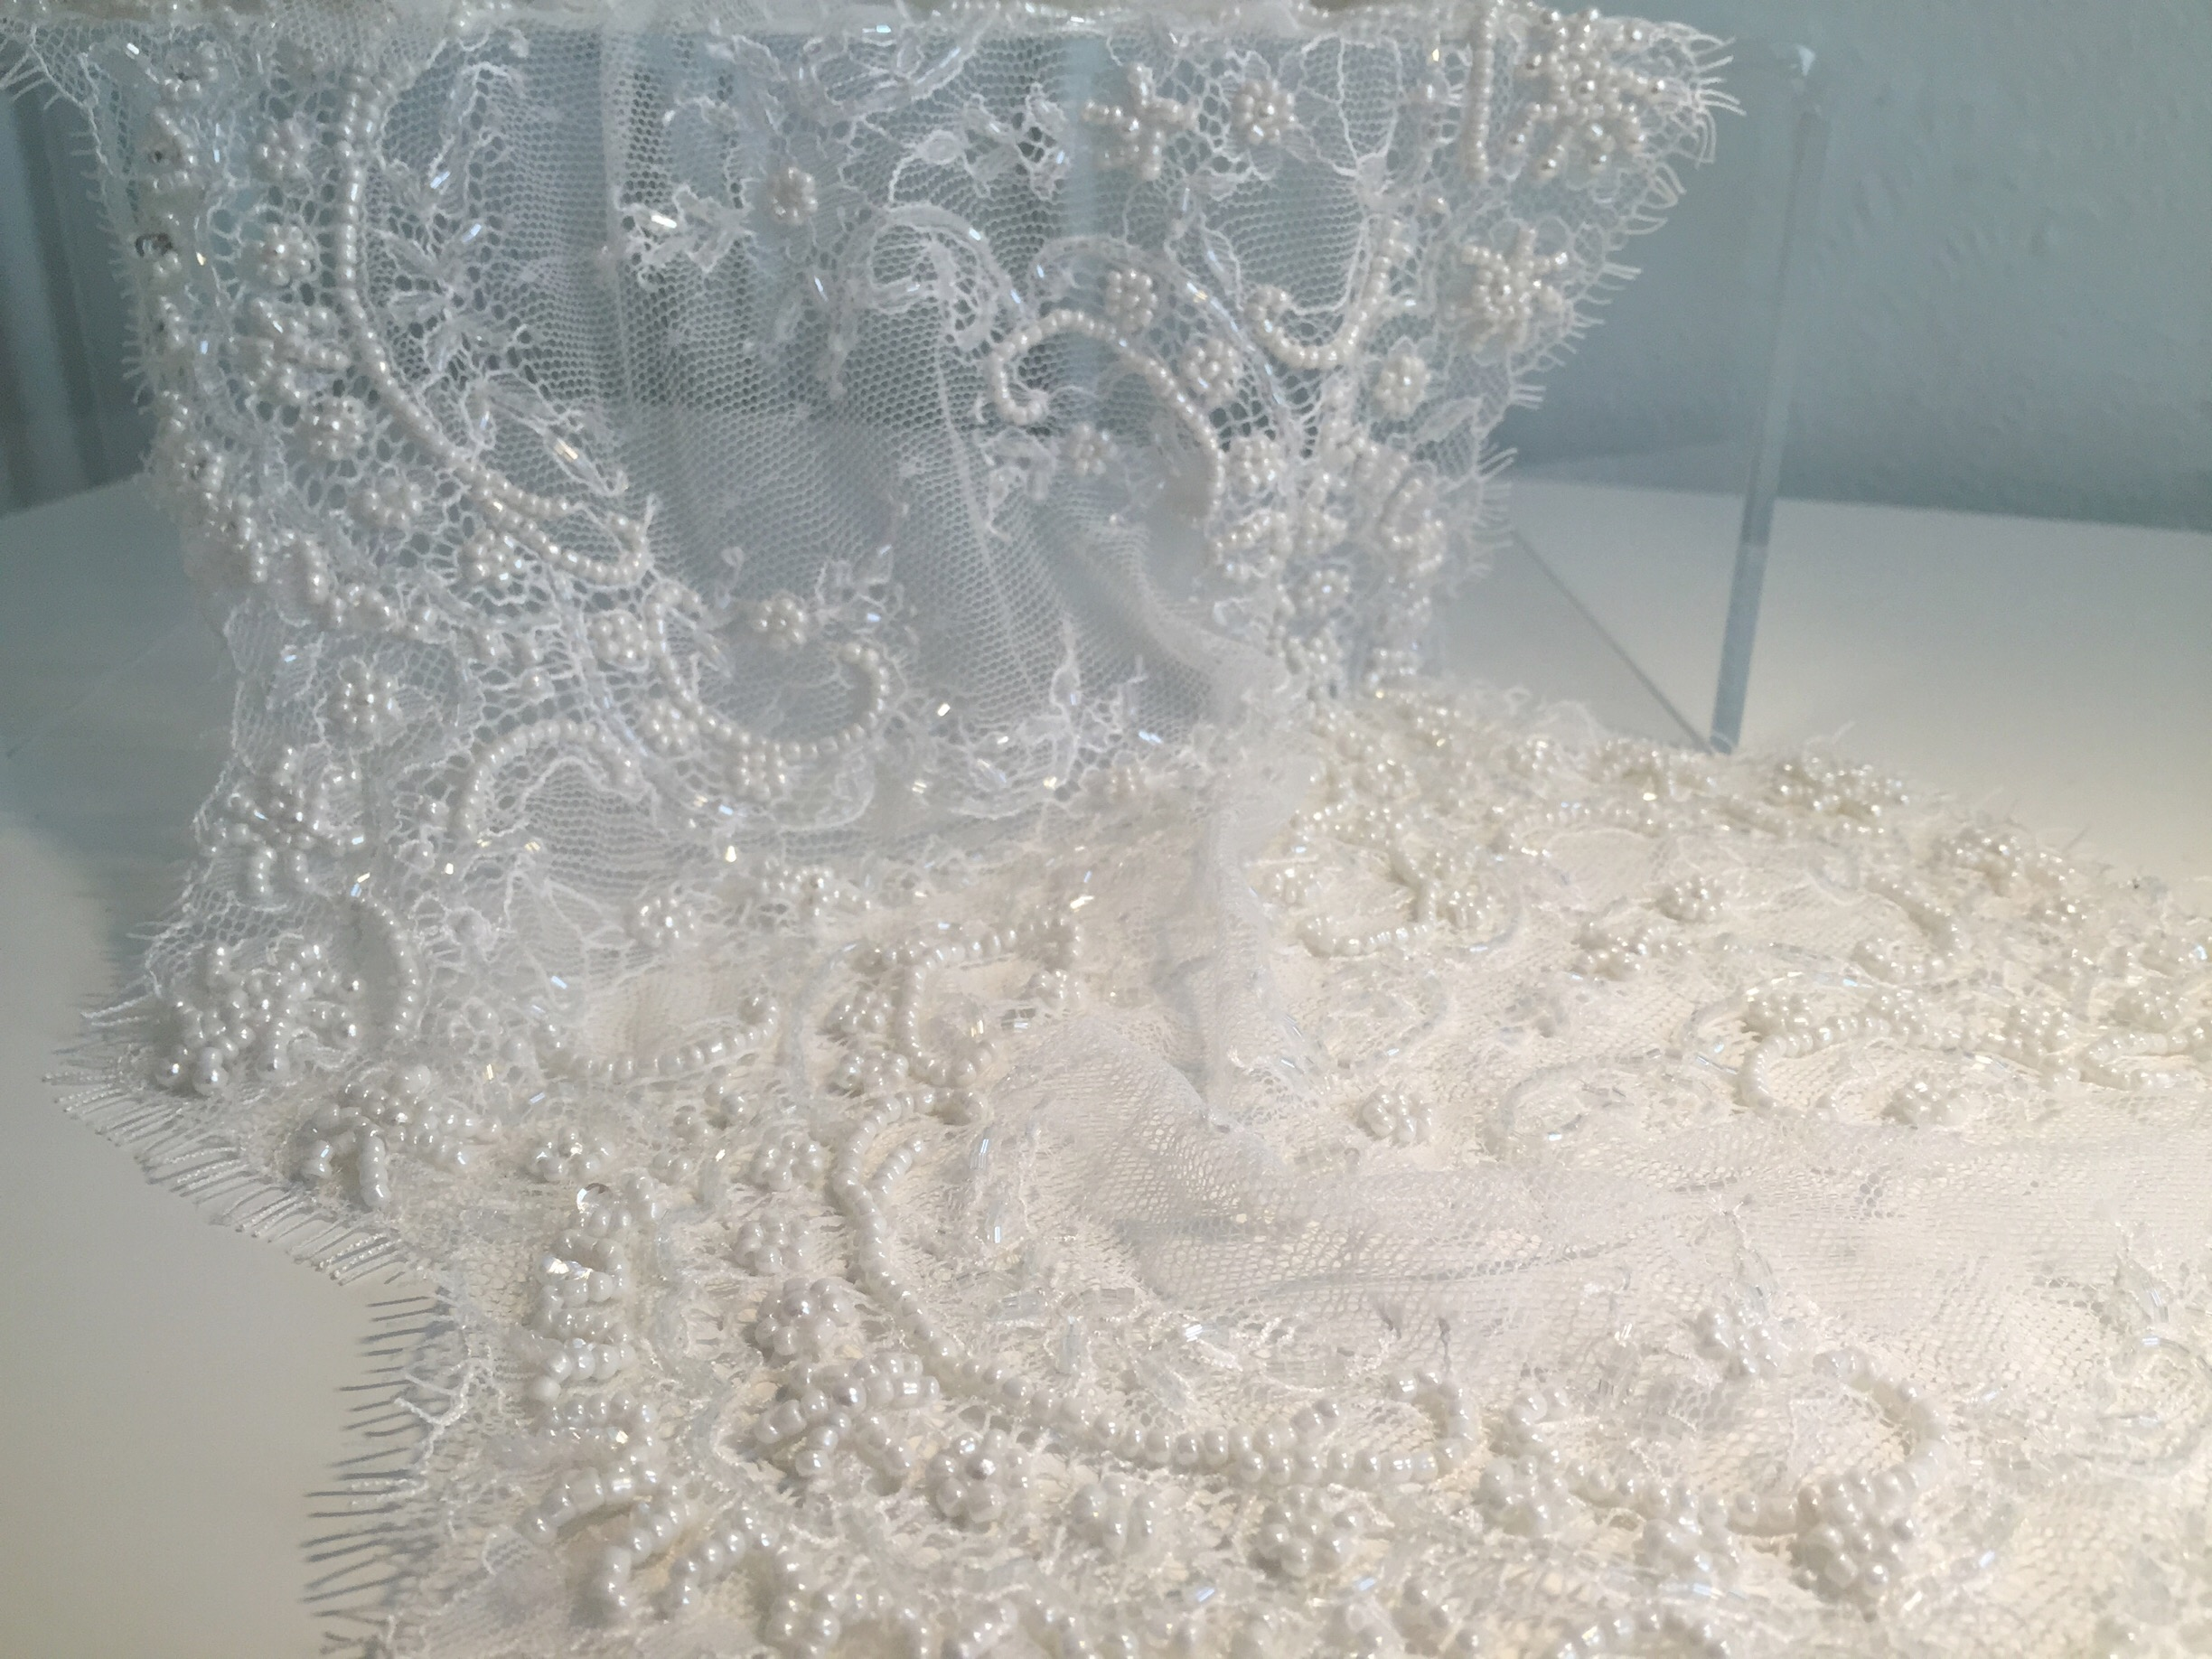 Beaded lace: A lot of chantilly and alençon laces may be beaded, particularly when it comes to bridal laces. Above is a beaded chantilly lace, with beads used to outline some of the floral motifs. This example also shows the eyelash fringe detail along the scalloped edge, which makes this a beautiful and elegant choice for a hem of train or if scallop depth allows, along a neckline and/or armhole of a bodice. When looking for beading lace, be sure to consider the additional time required to work with the fabric.